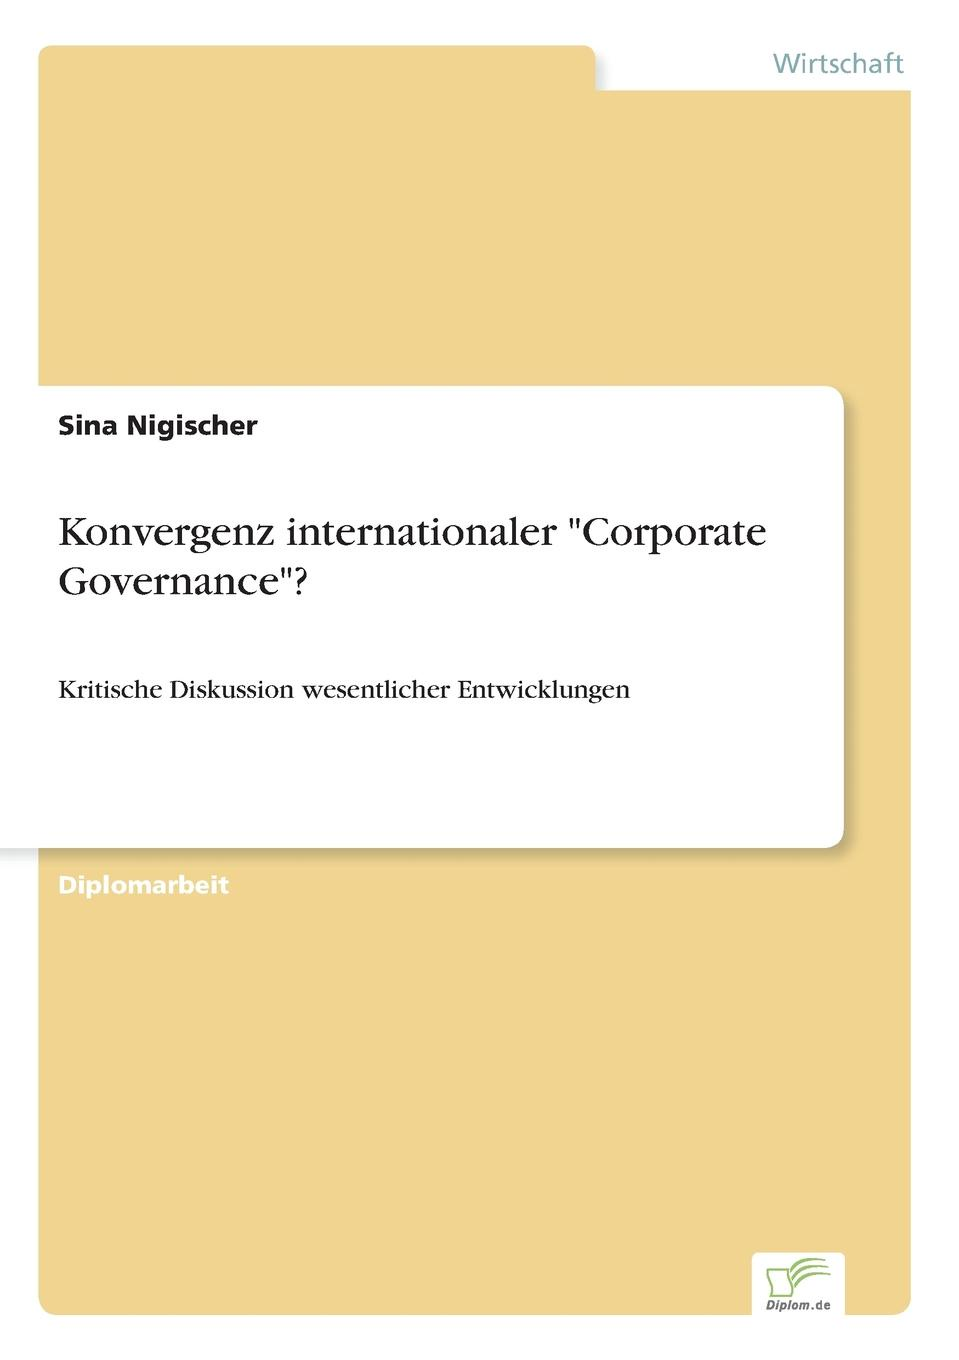 Sina Nigischer Konvergenz internationaler Corporate Governance. lena lindlar hohere unternehmenswerte durch corporate governance